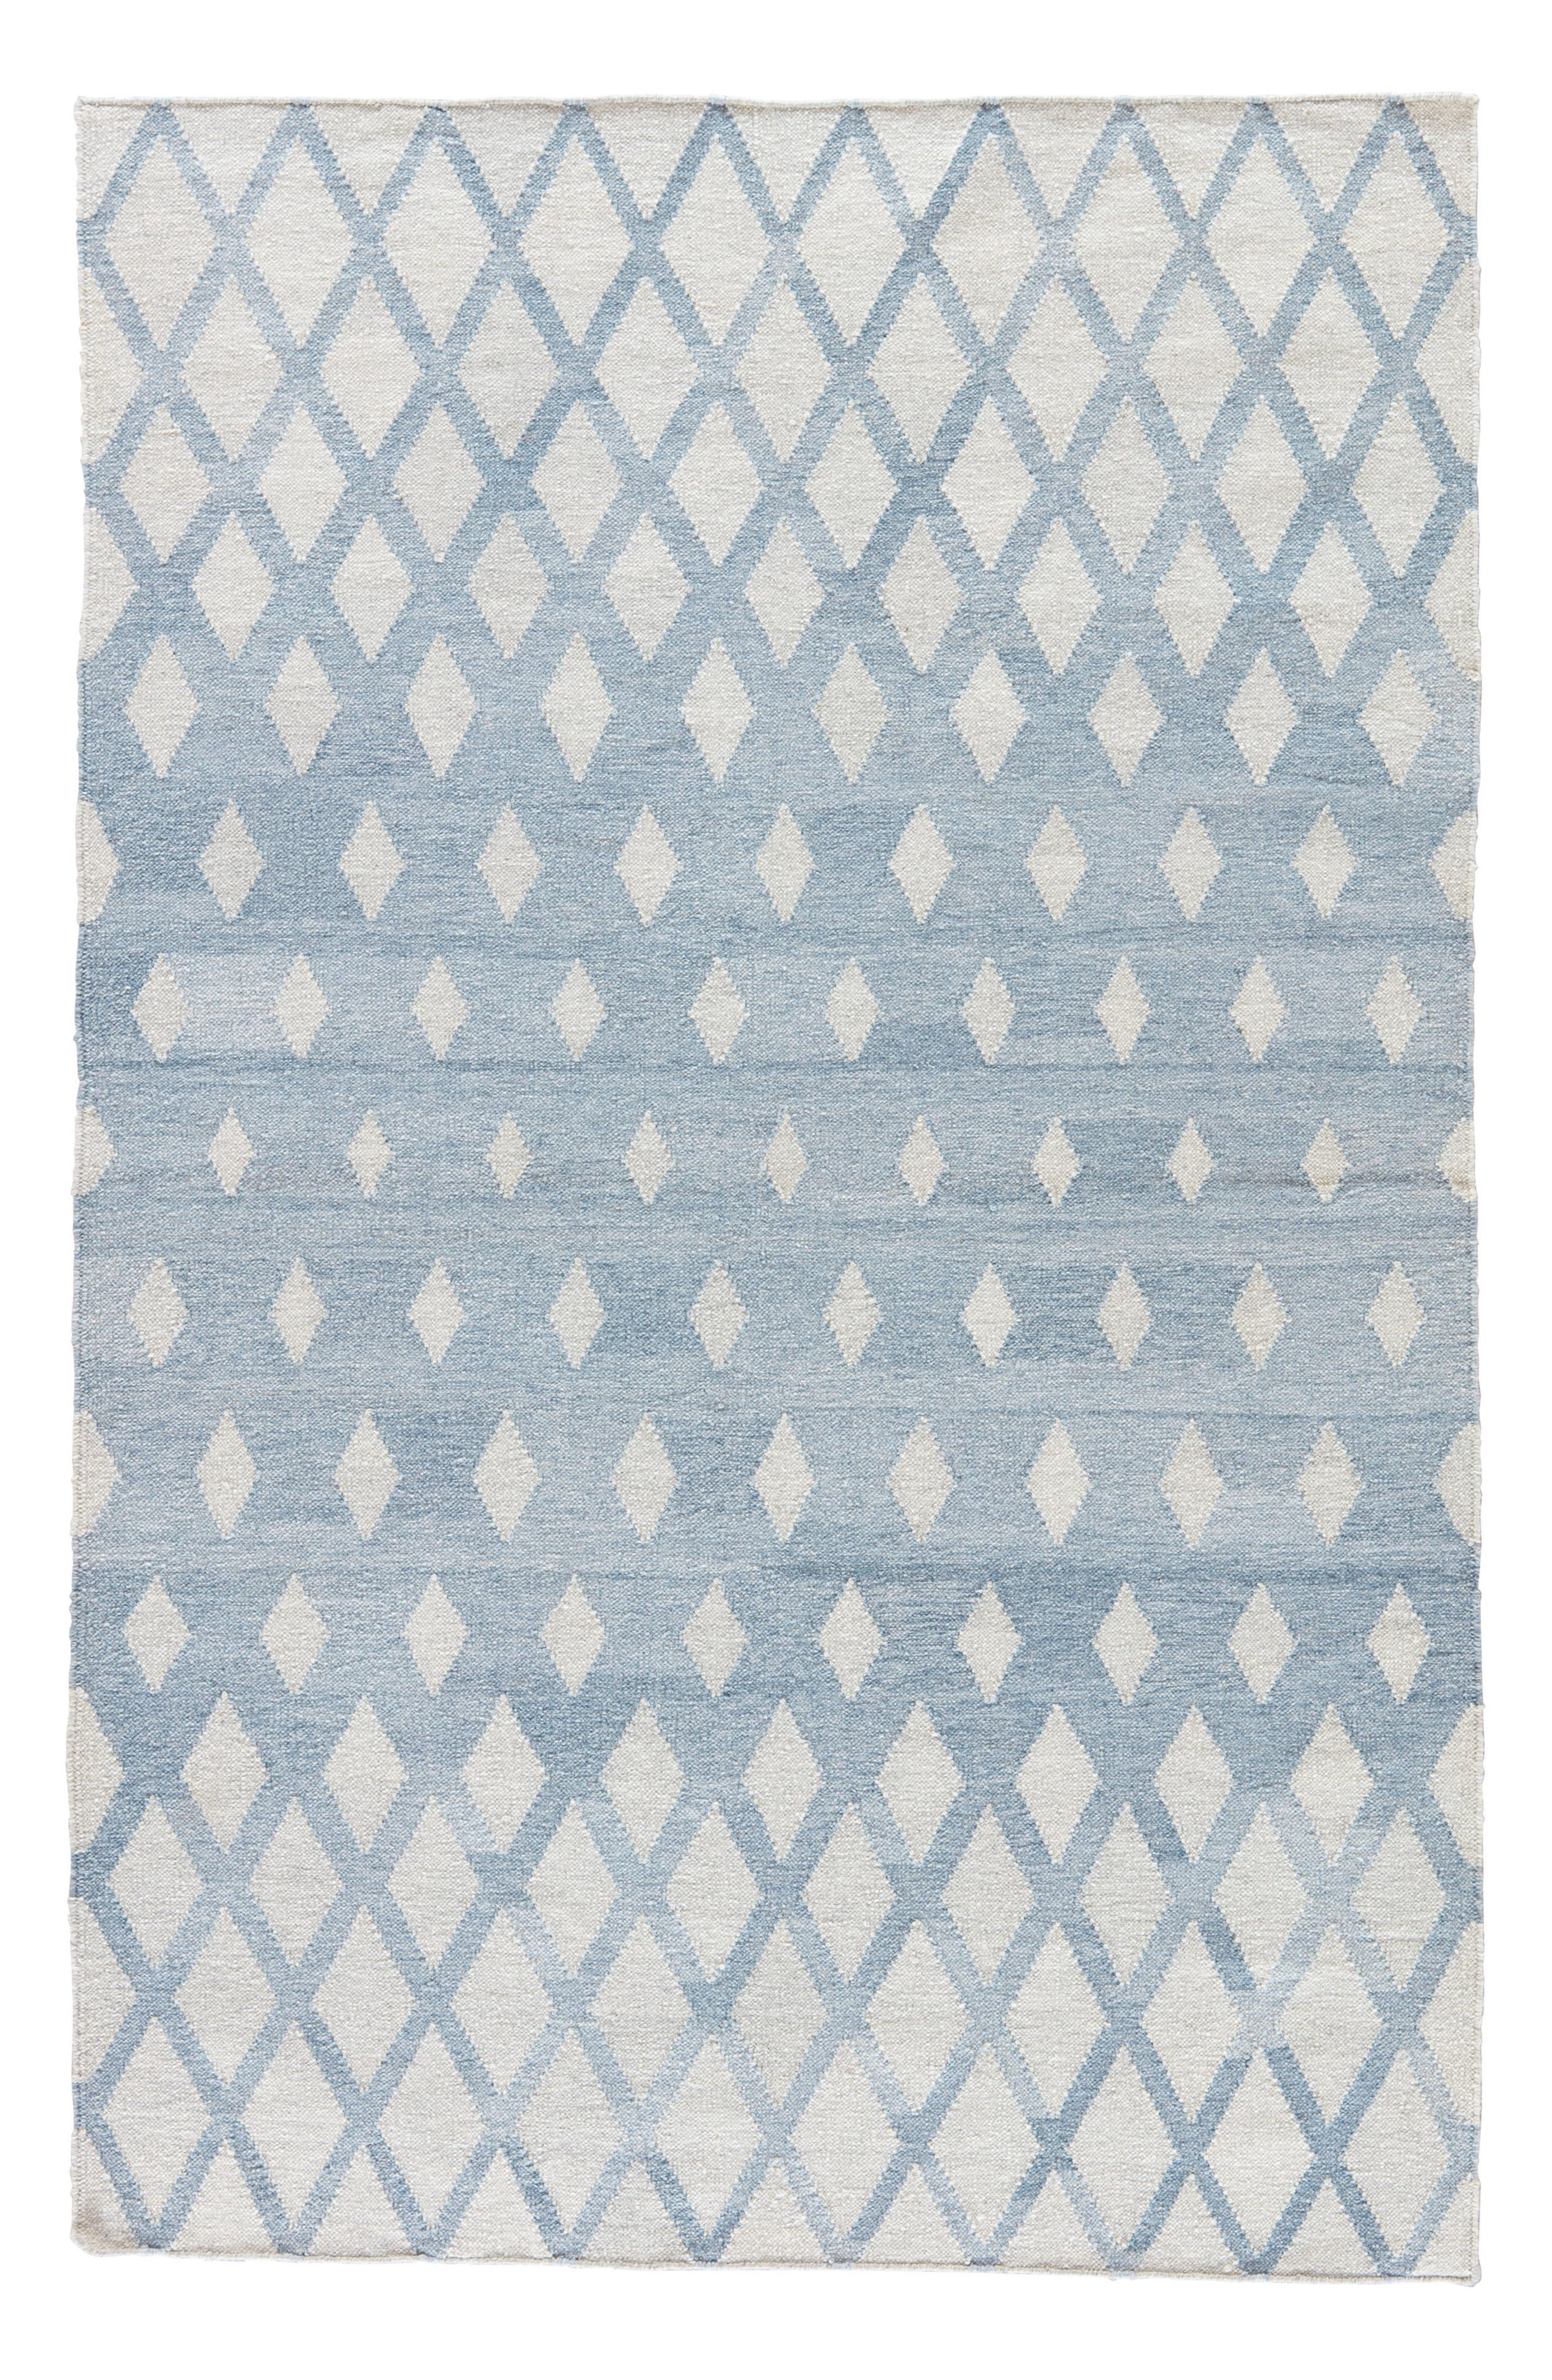 Pyramid Blocks Rug,                             Main thumbnail 1, color,                             Faded Denim/ Oatmeal